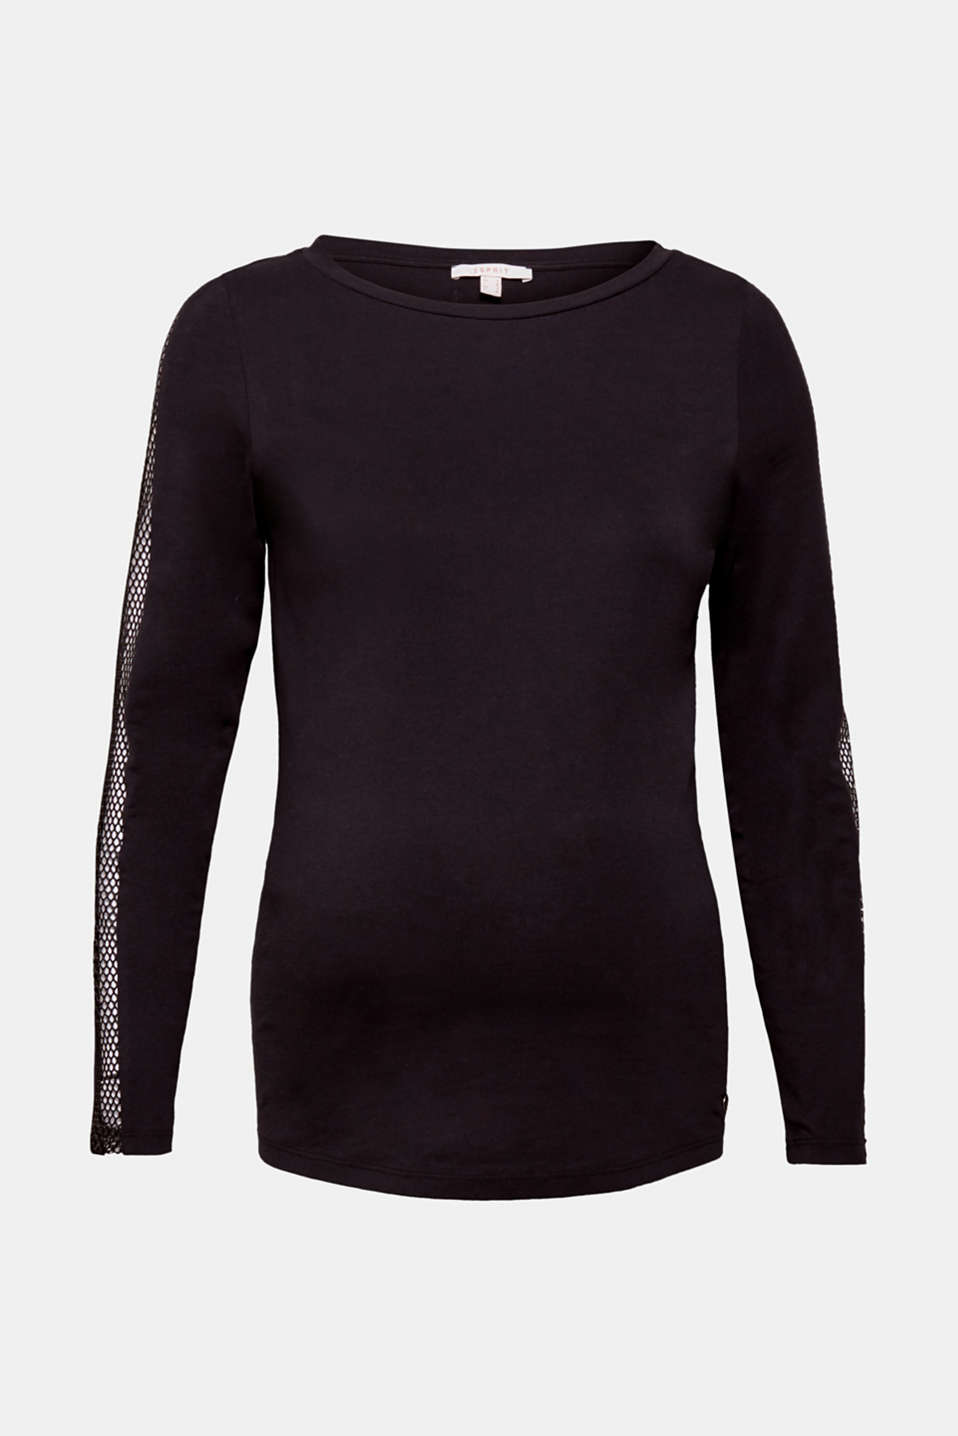 This cotton long sleeve top features airy mesh trims on the sleeves to reveal a glimpse of skin!